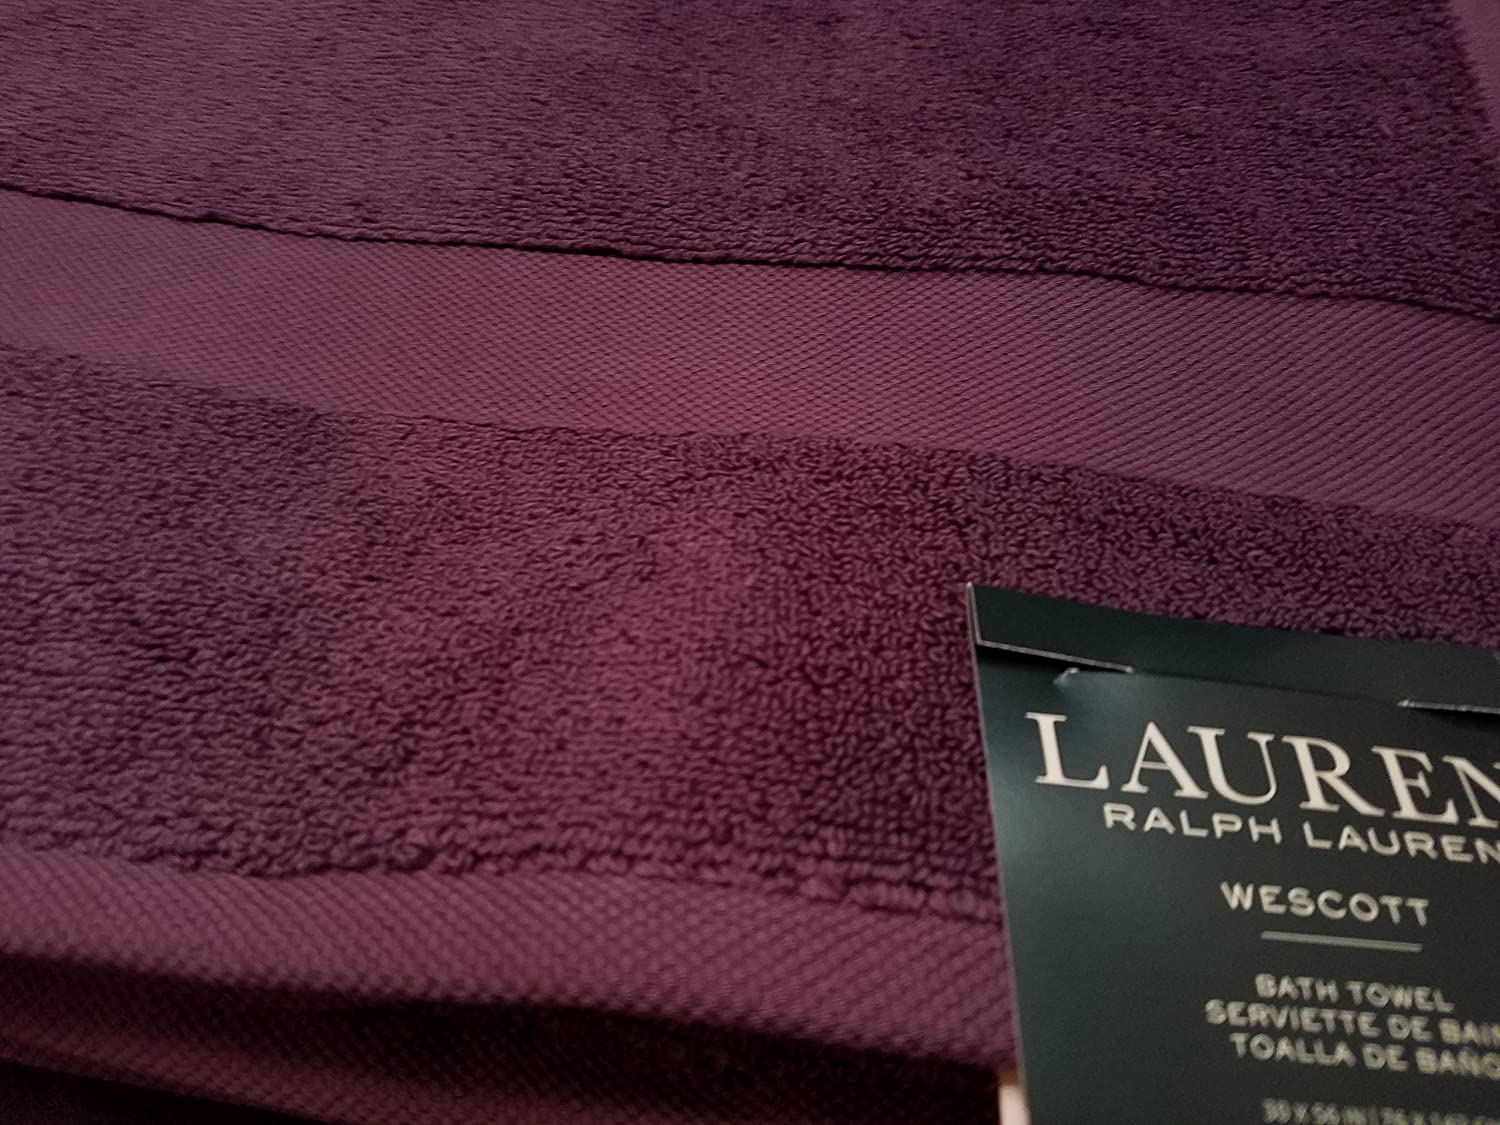 Amazon.com: Ralph Lauren Wescott Towel Noble Purple Bath Towel - 30x56: Home & Kitchen